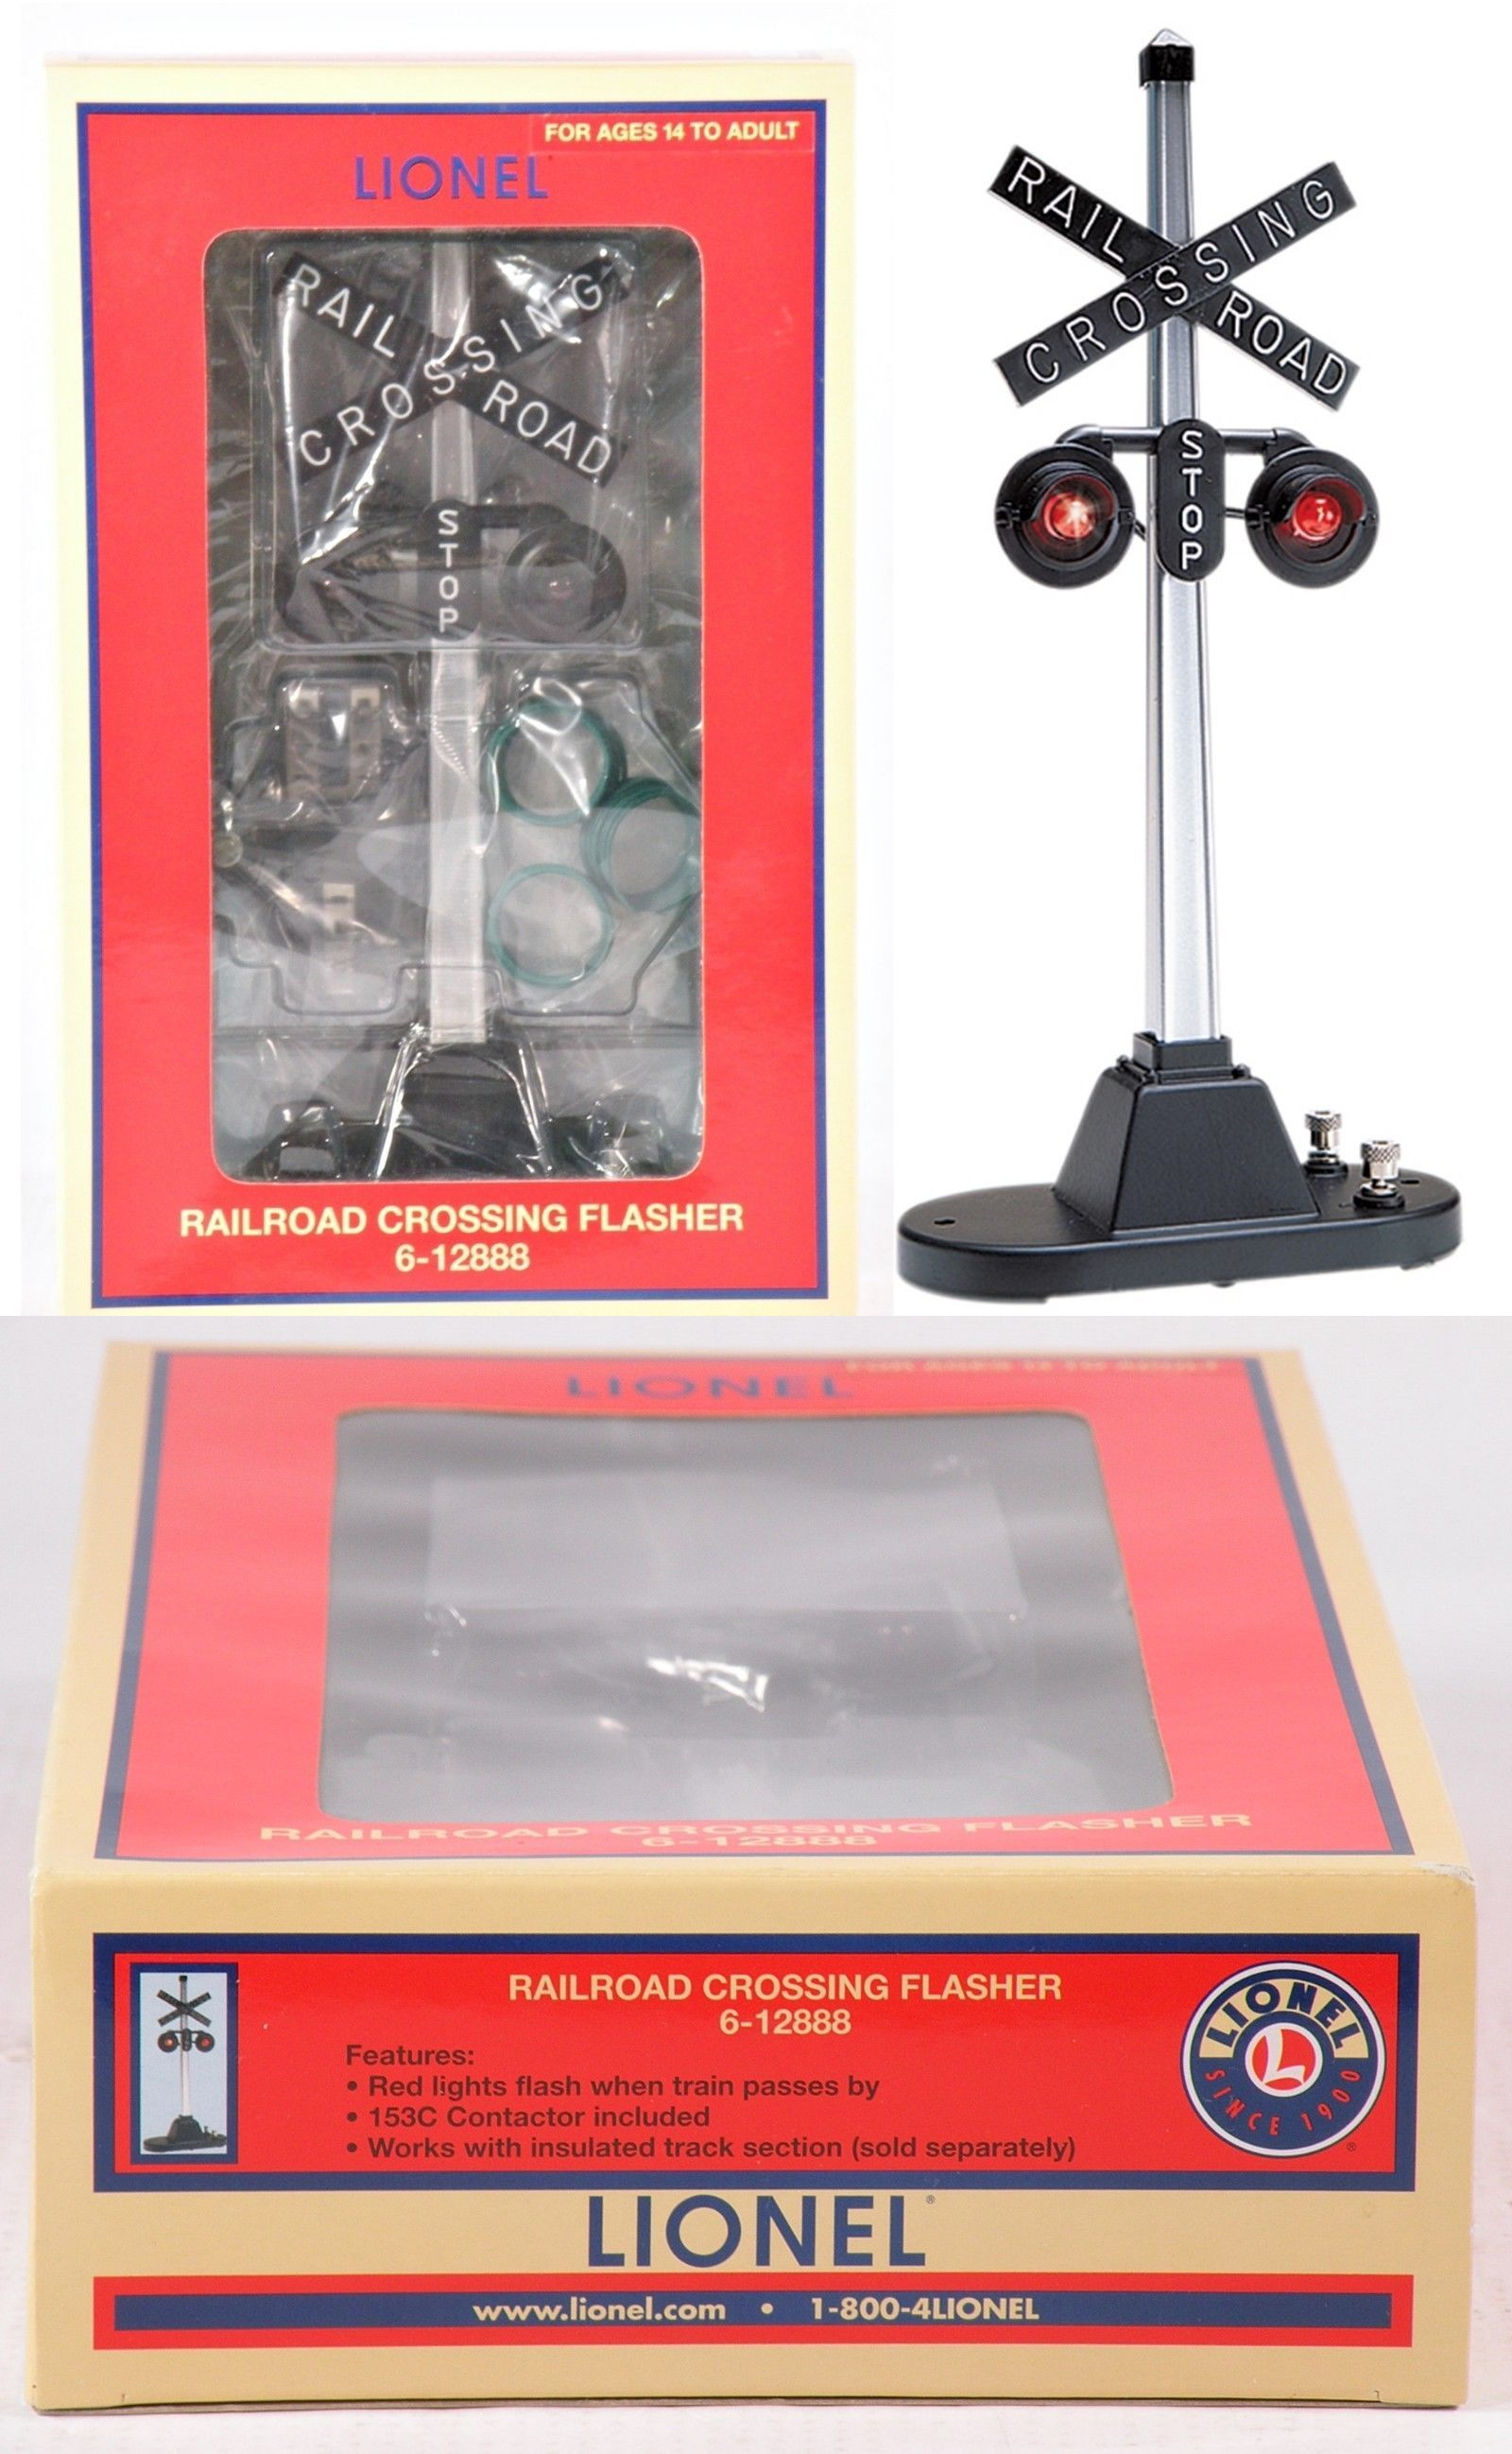 signals 81051 lionel 6 12888 railroad crossing flasher 154 c9 buy it now only 51 on ebay signals lionel railroad crossing flasher [ 1600 x 2596 Pixel ]